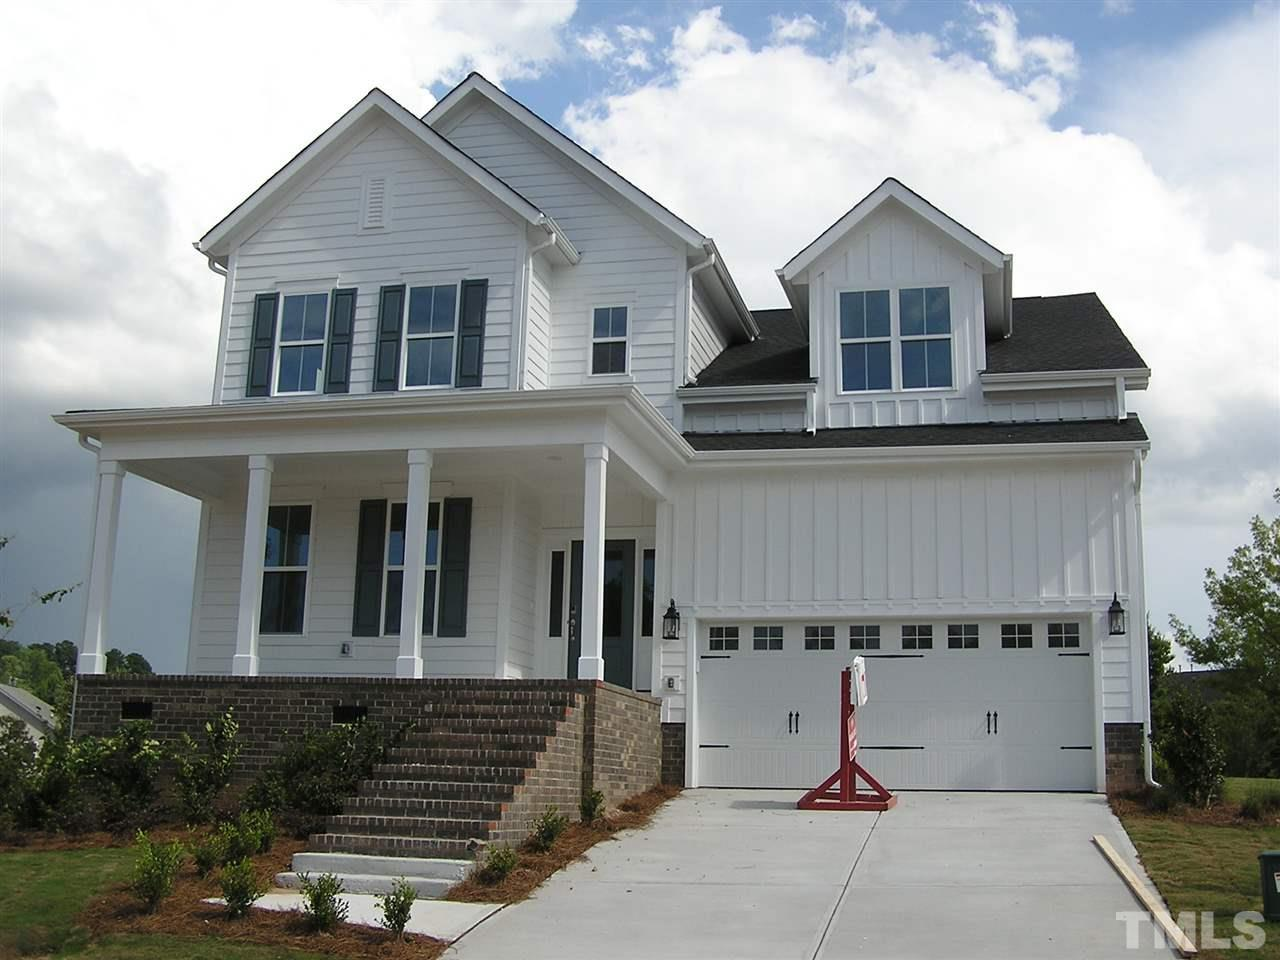 Photo for 2013 Waterbush Cove Court, Cary, NC 27519 (MLS # 2278762)